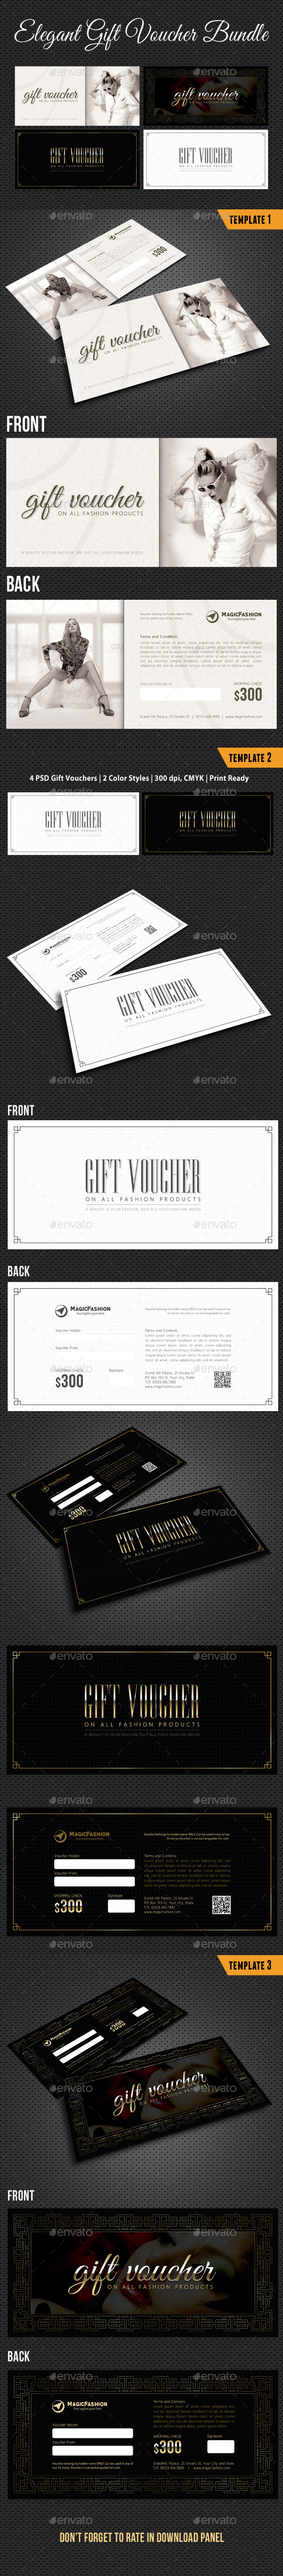 GraphicRiver 3 in 1 Elegant Gift Voucher Bundle 01 11056562